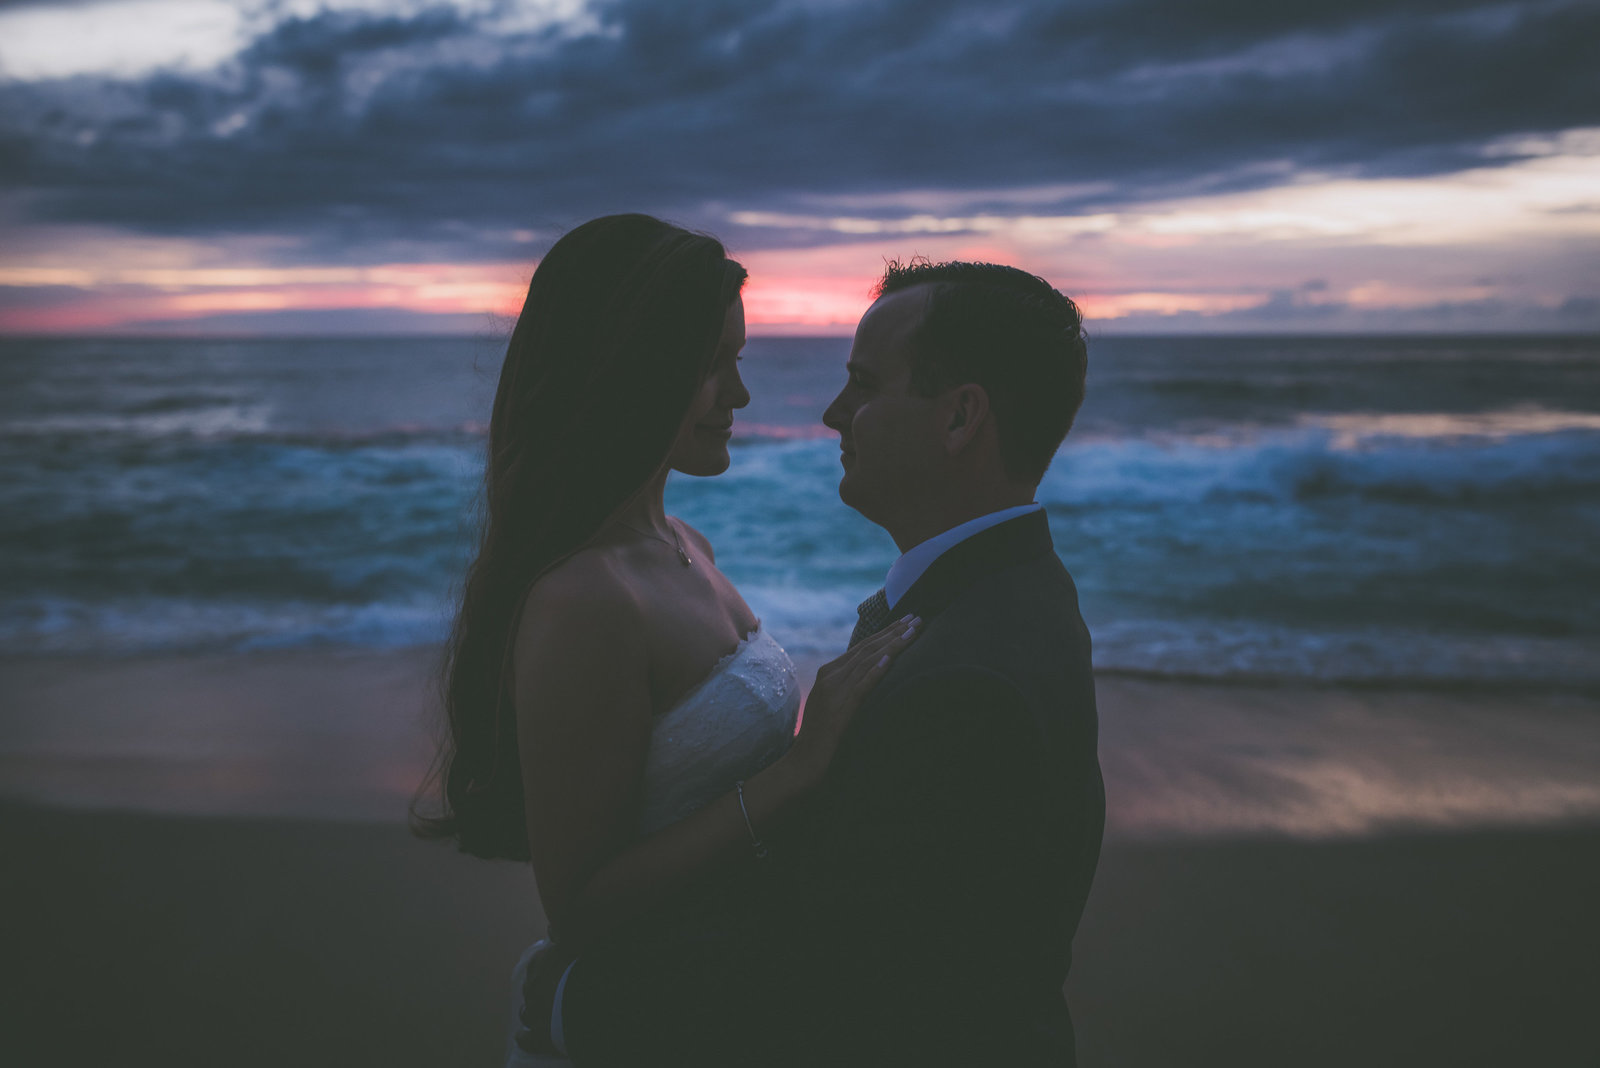 Bride and groom silhouette during sunset on a Oahu beach.